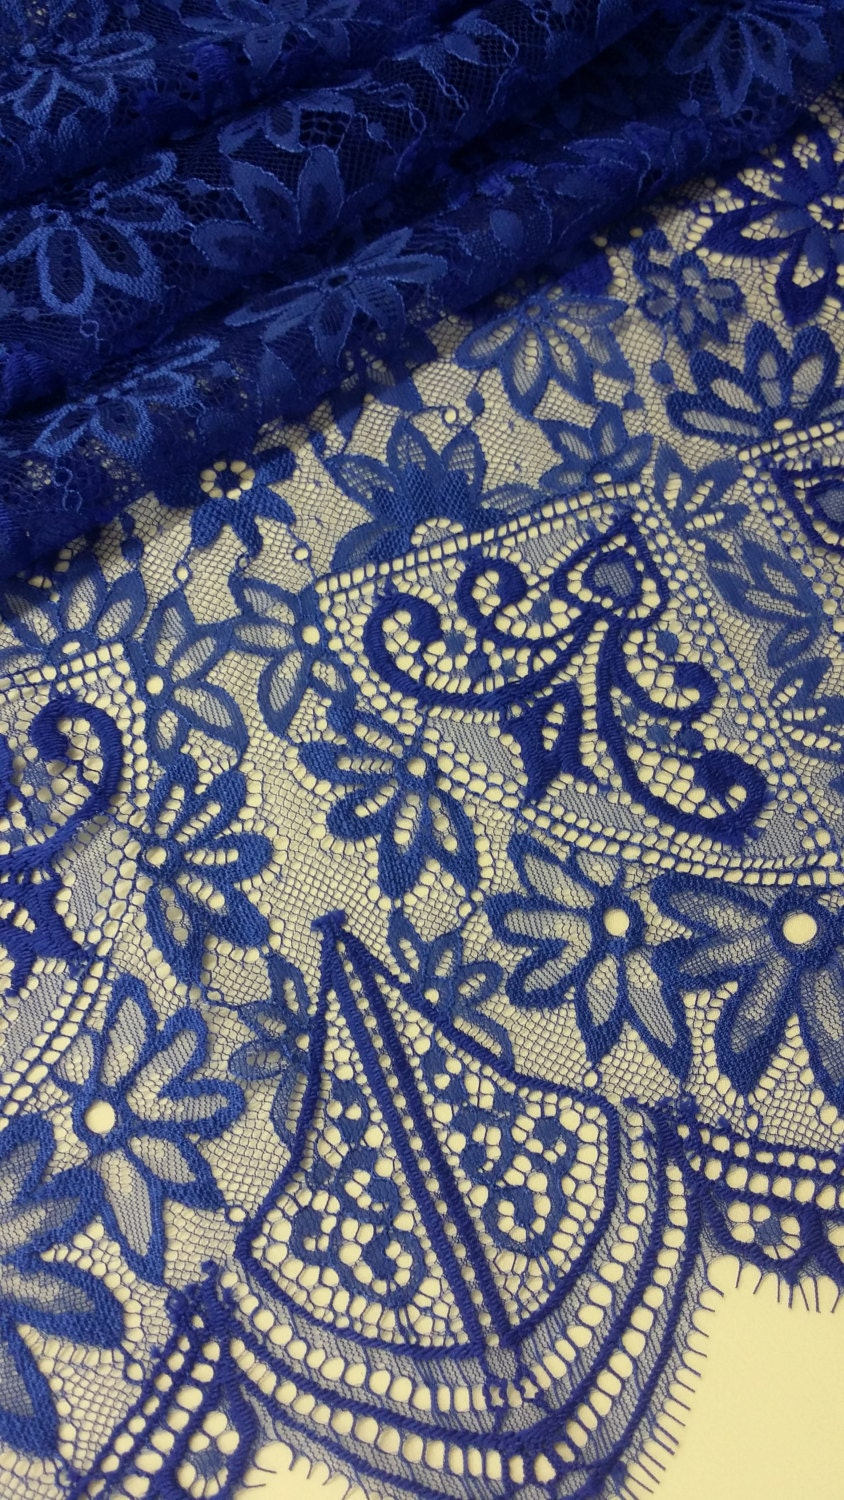 Royal Blue Lace Fabric French Lace Chantilly Lace Bridal